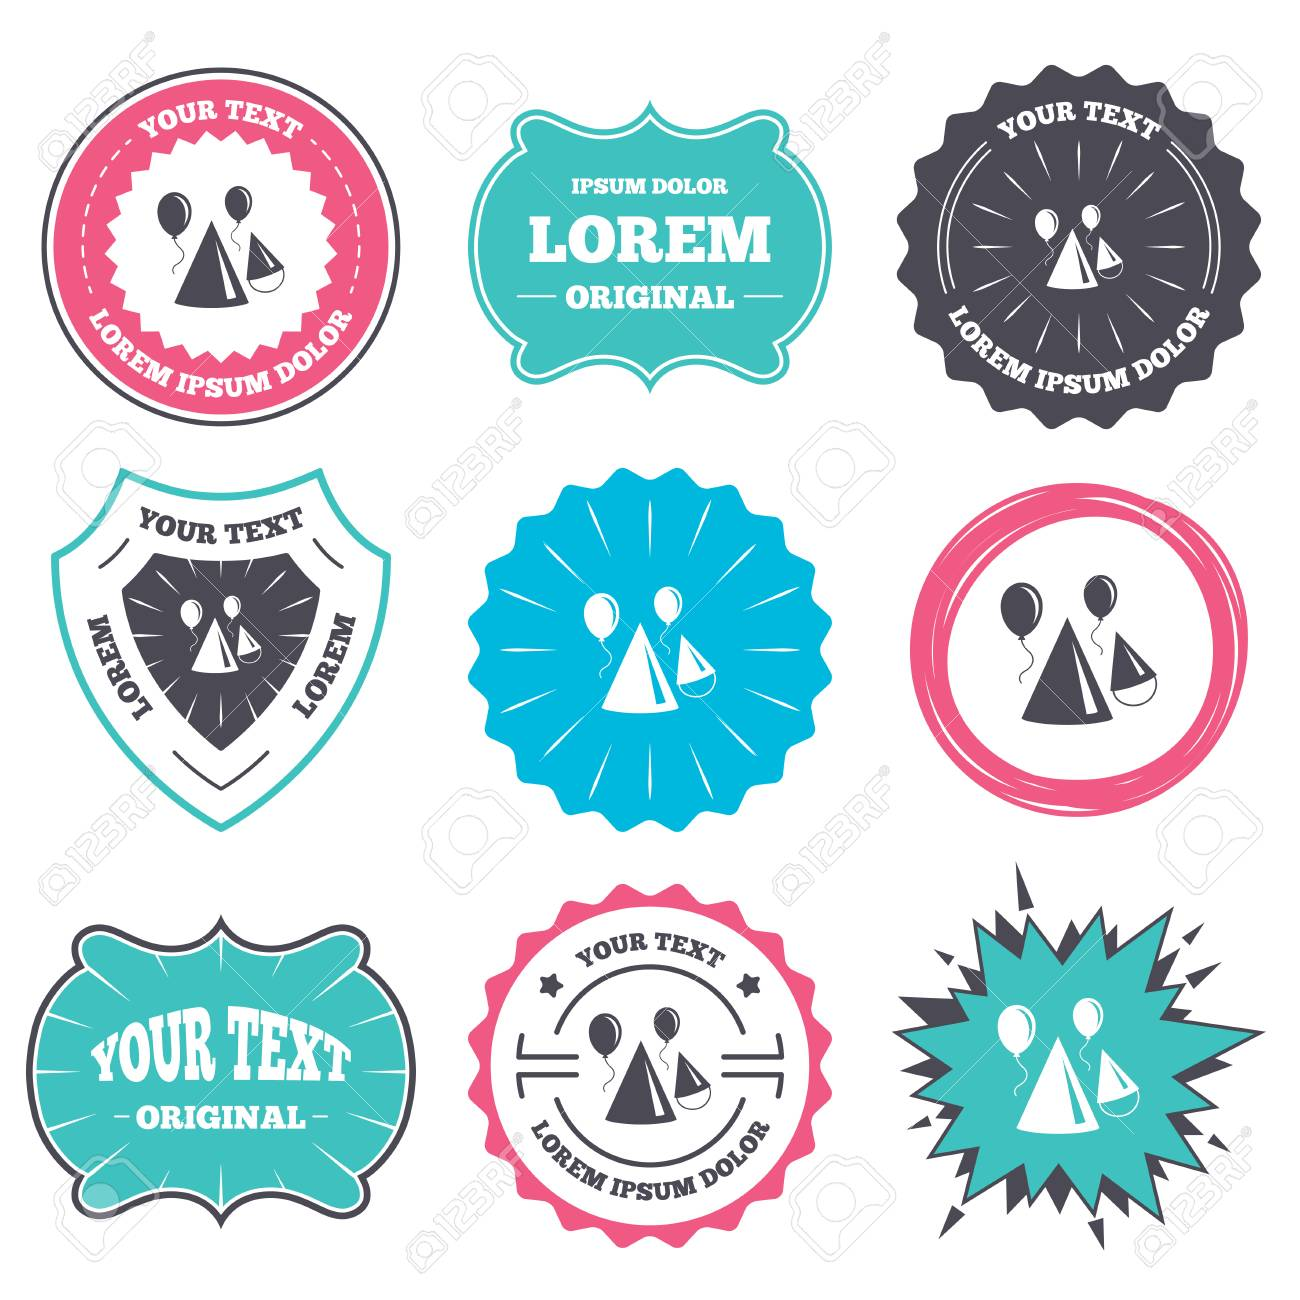 label and badge templates party hat sign icon birthday celebration